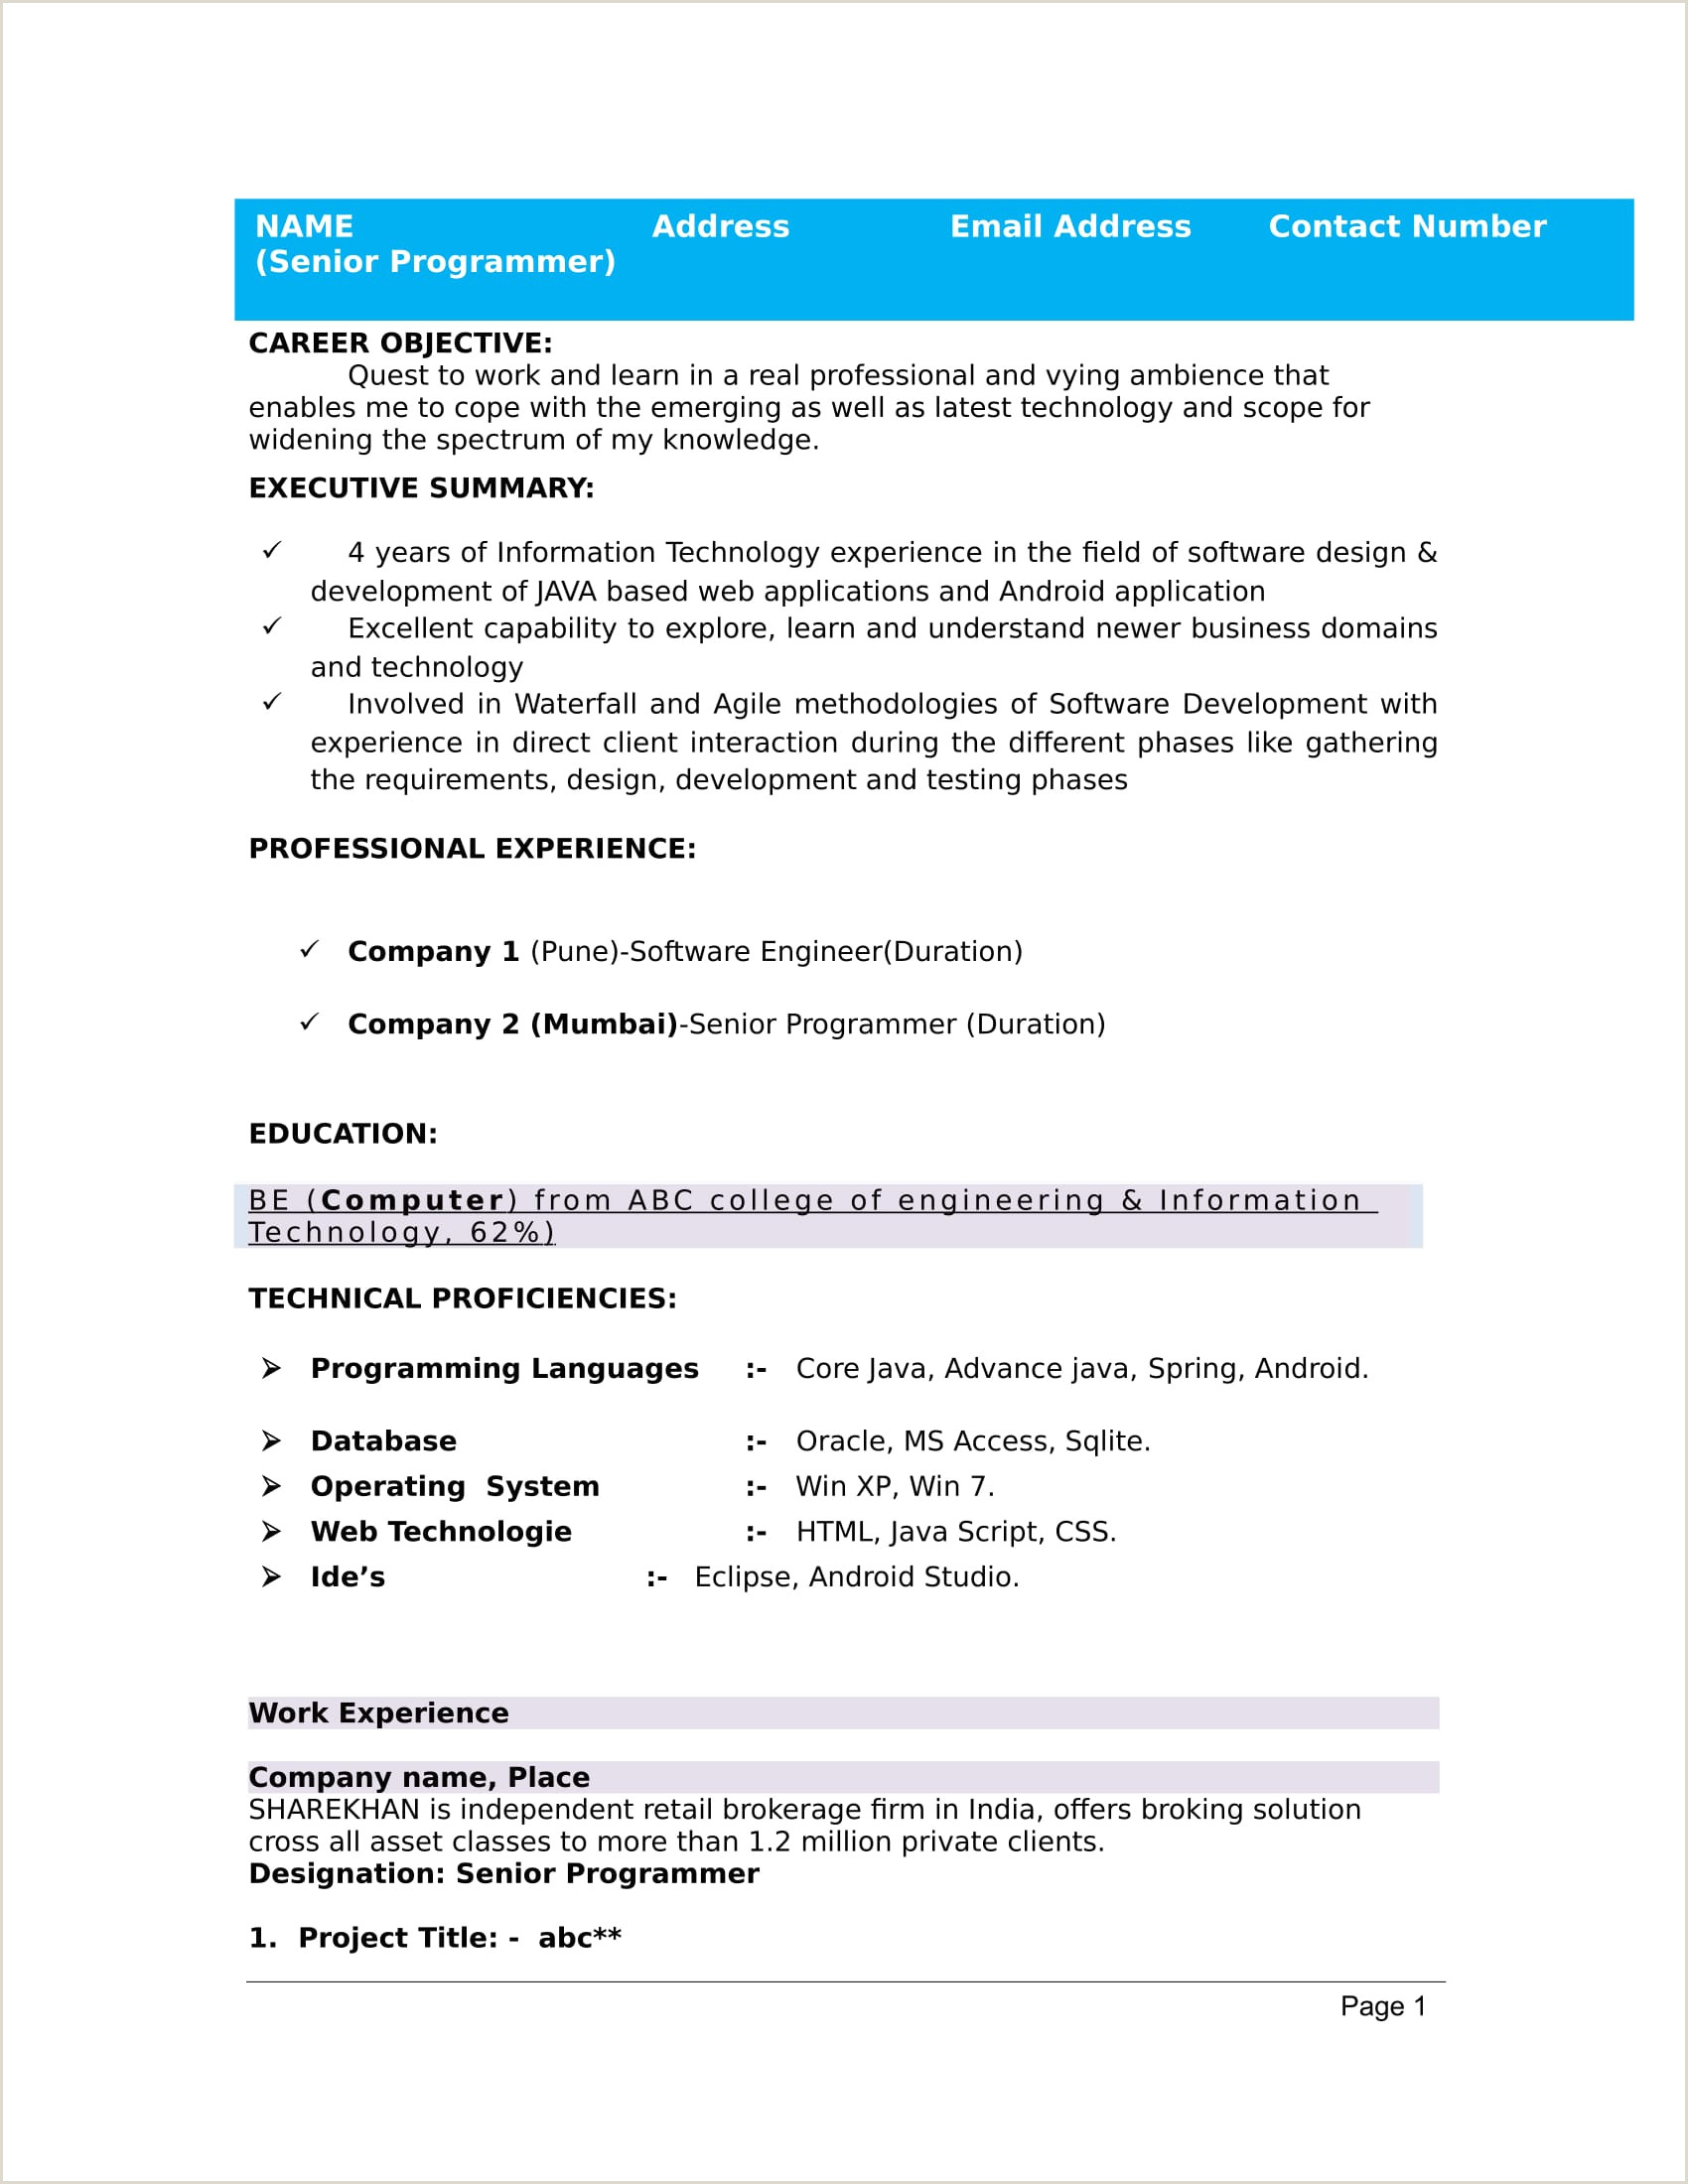 Fresher Resume format Free Download 32 Resume Templates for Freshers Download Free Word format